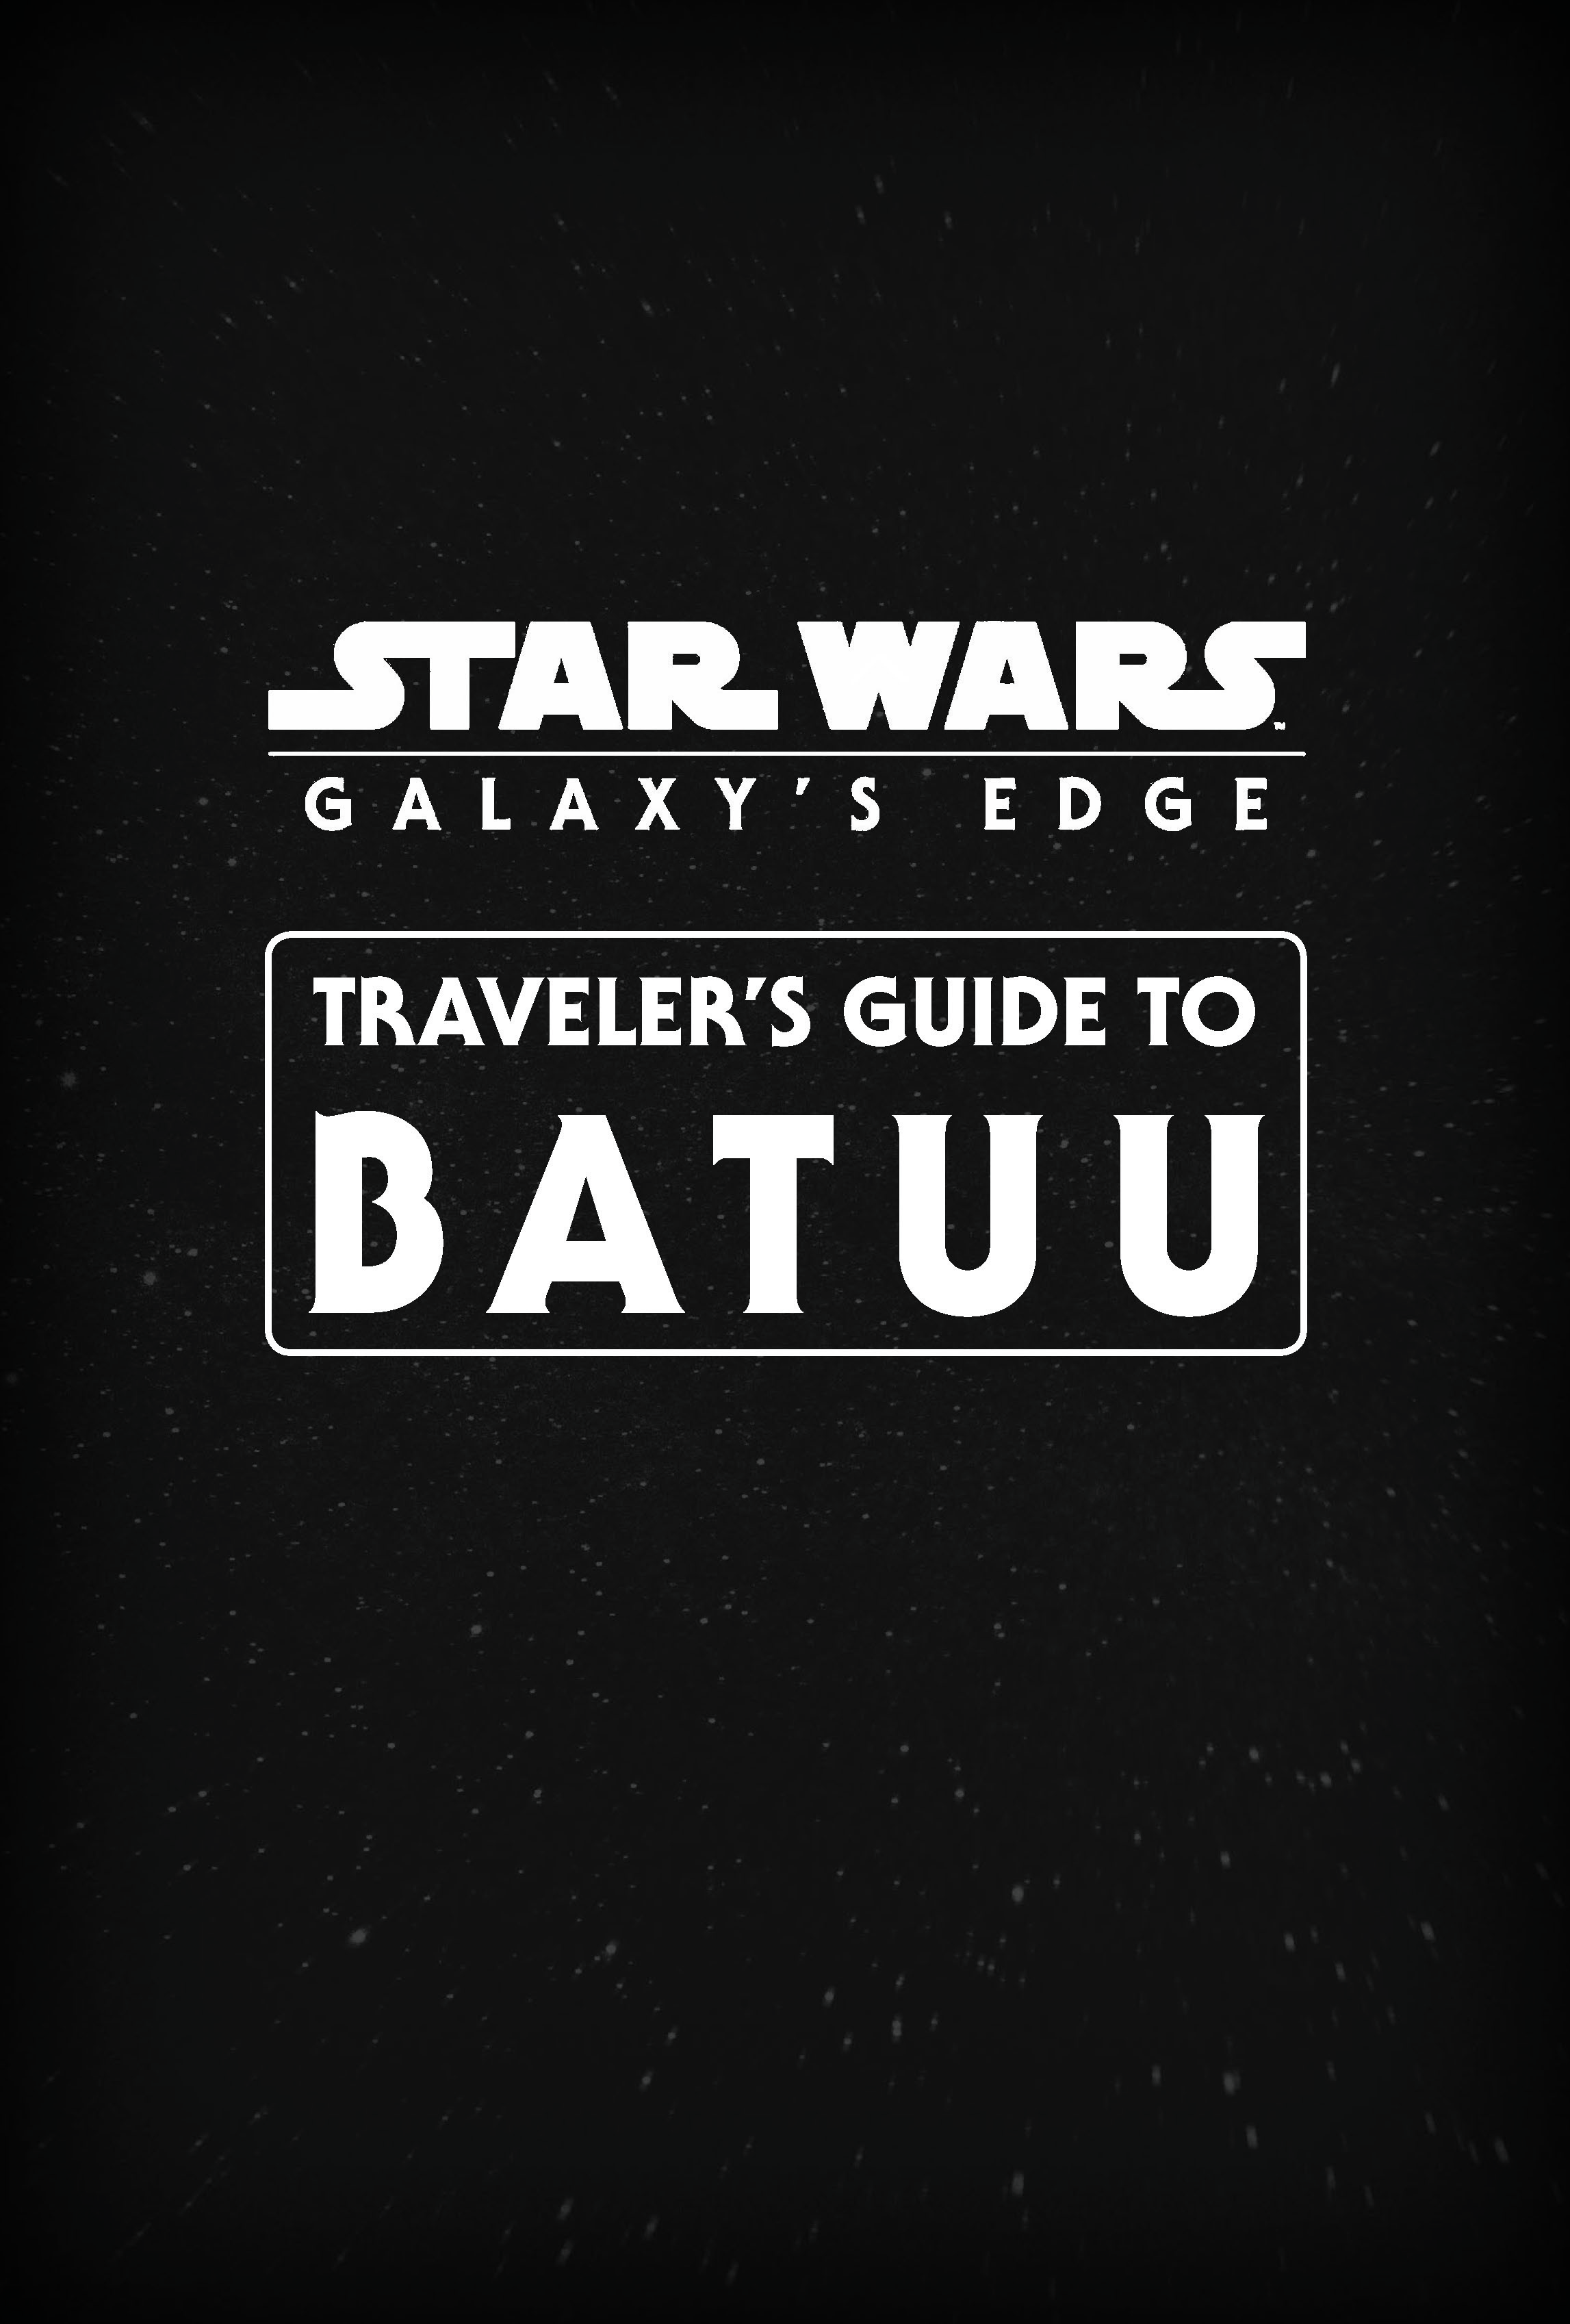 Galaxy's Edge: Traveler's Guide to Batuu (19.11.2019)